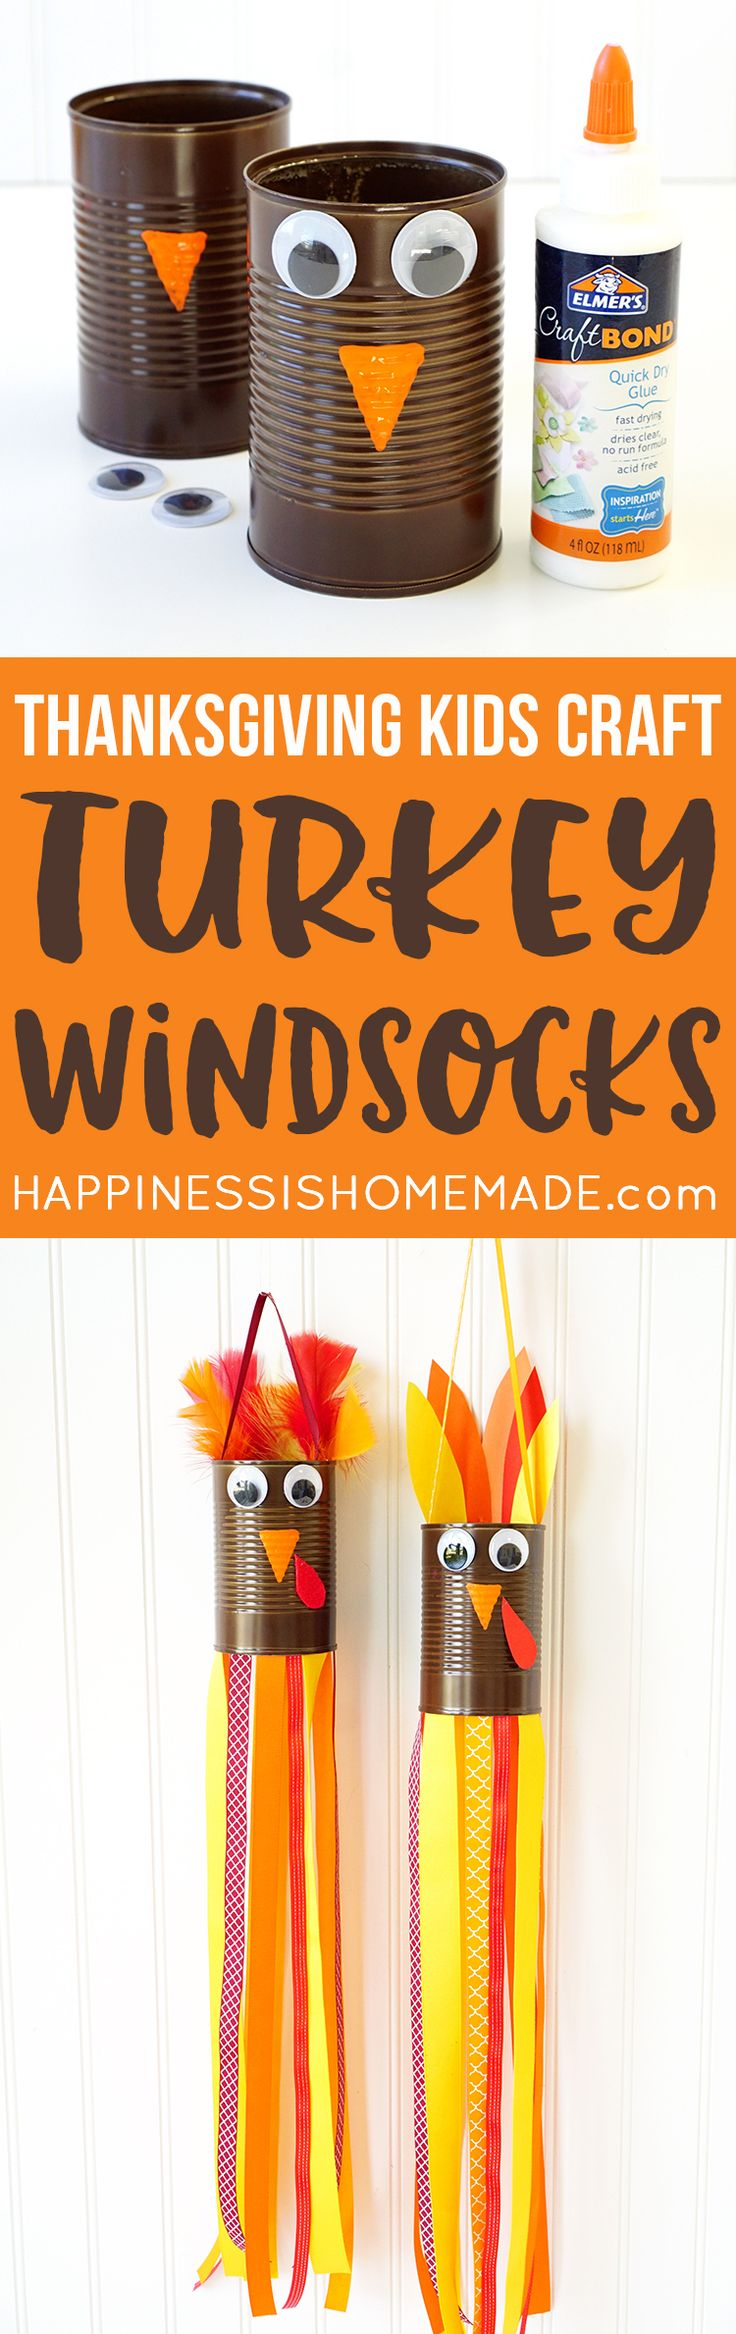 Thanksgiving Kids Craft: Turkey Windsocks - Need a quick and easy  Thanksgiving kids craft?